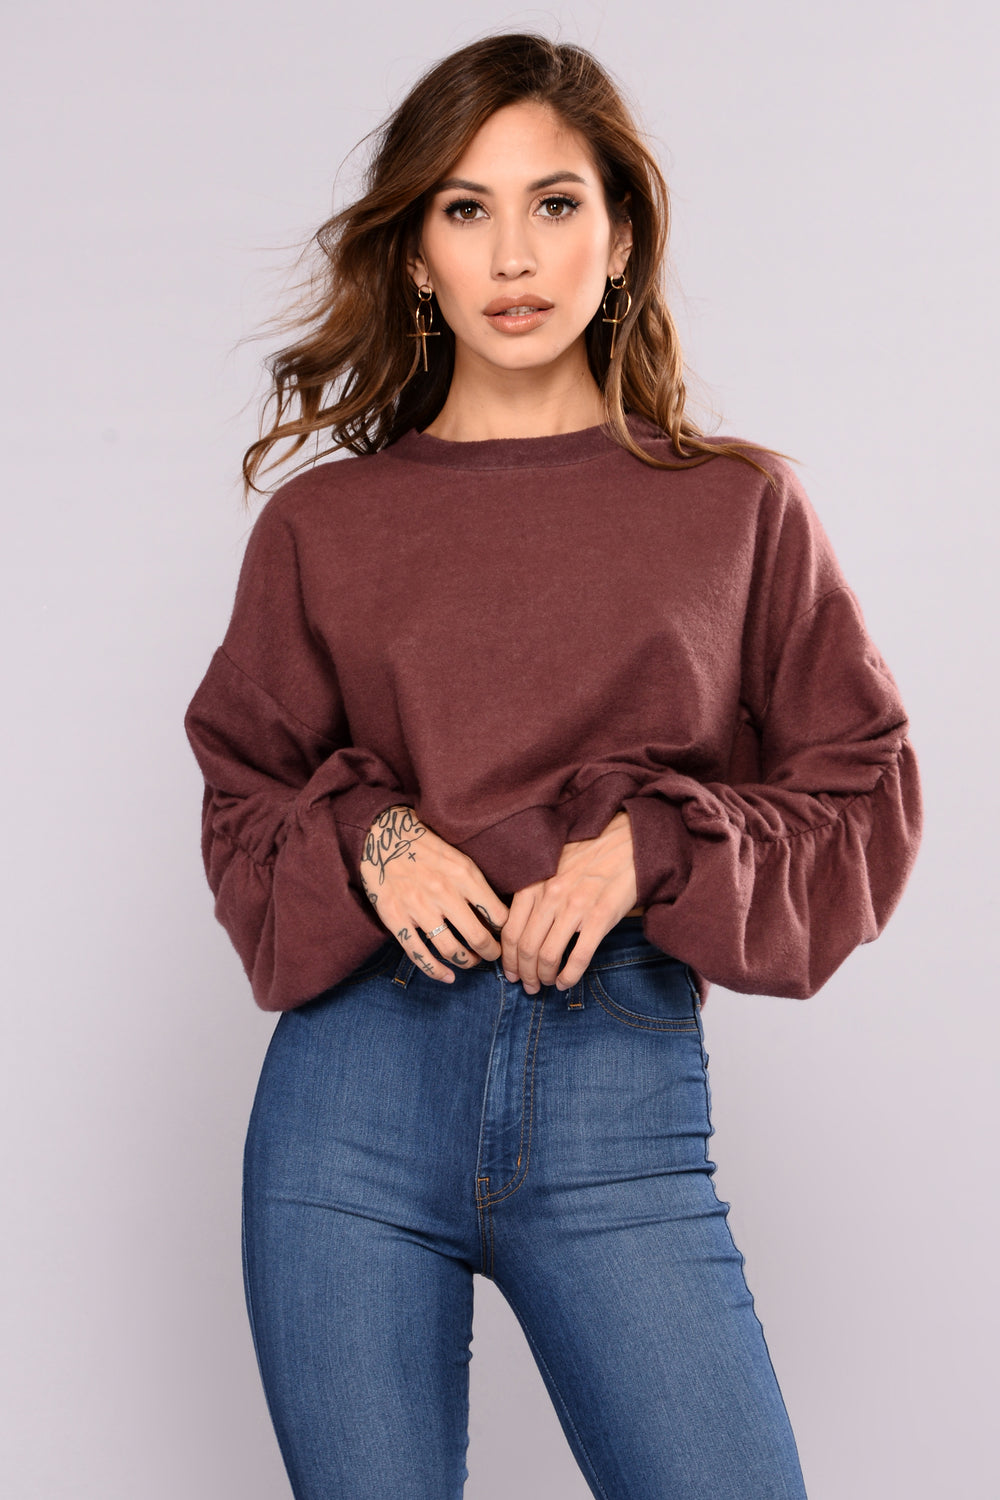 Mapleridge Sweater - Burgundy